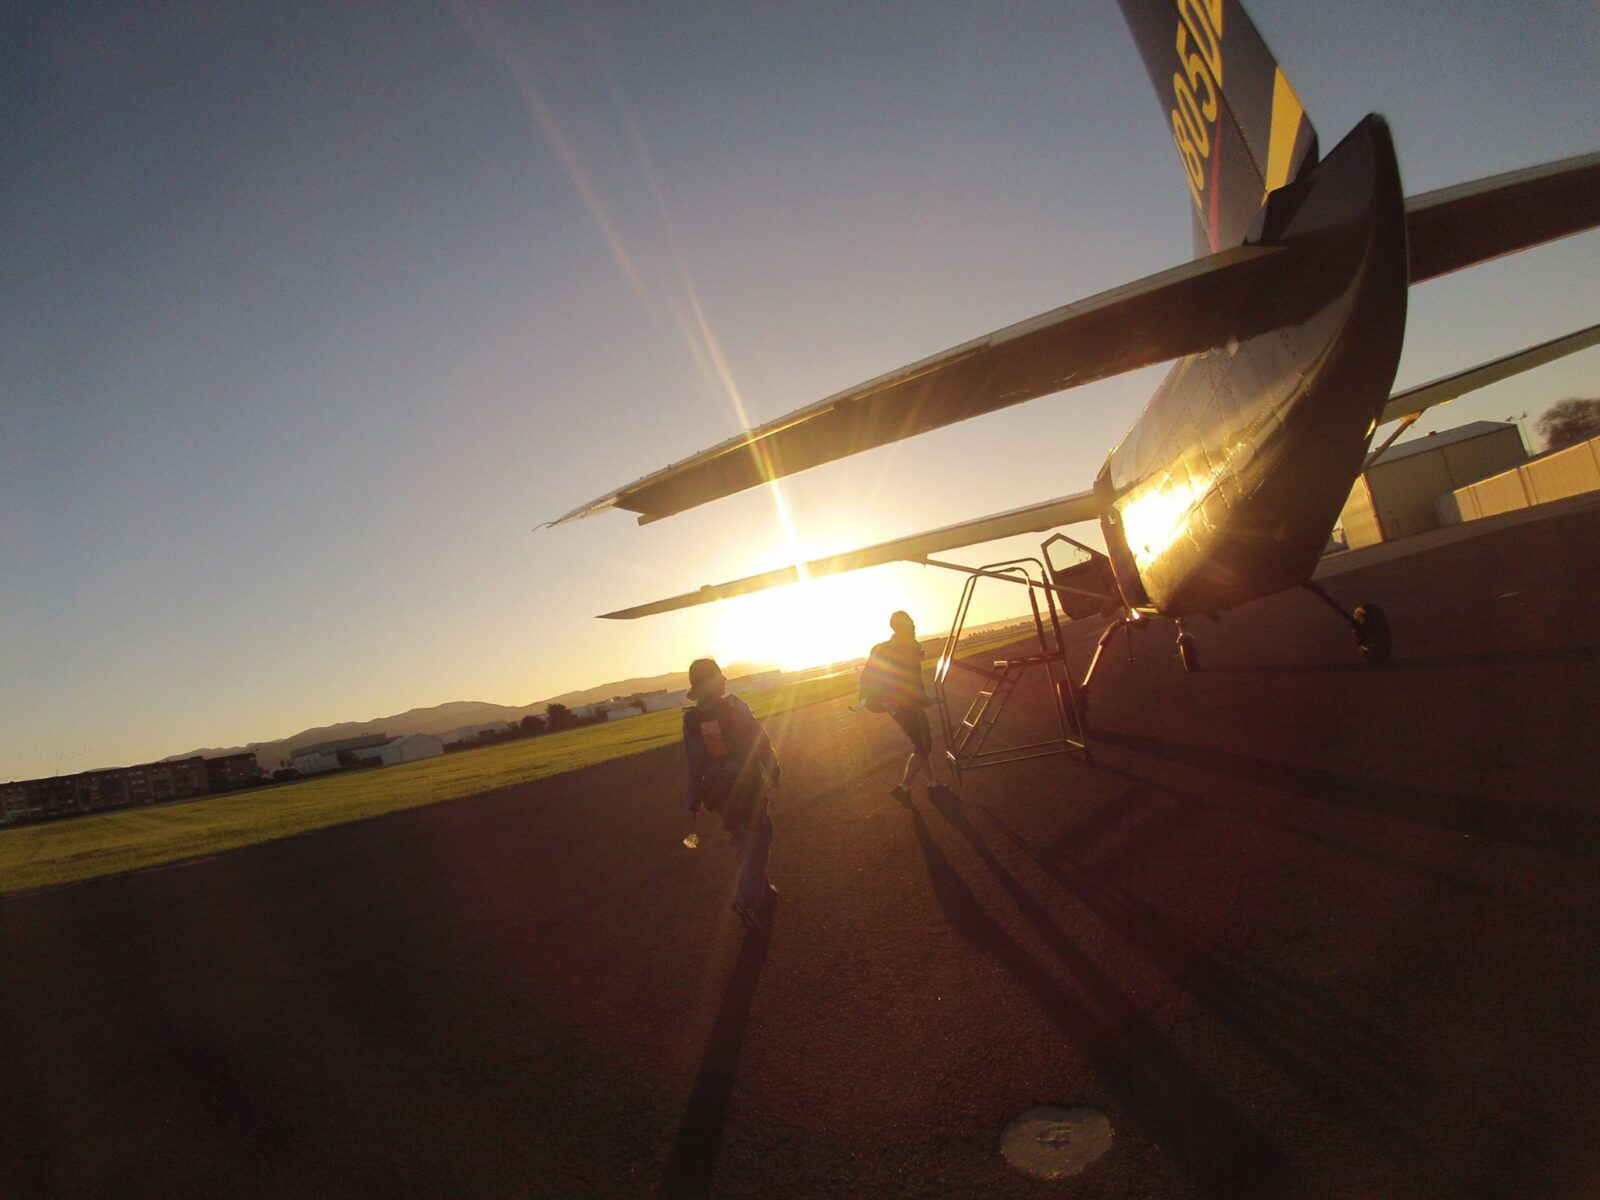 sunset skydive with Skydive Santa Barbara